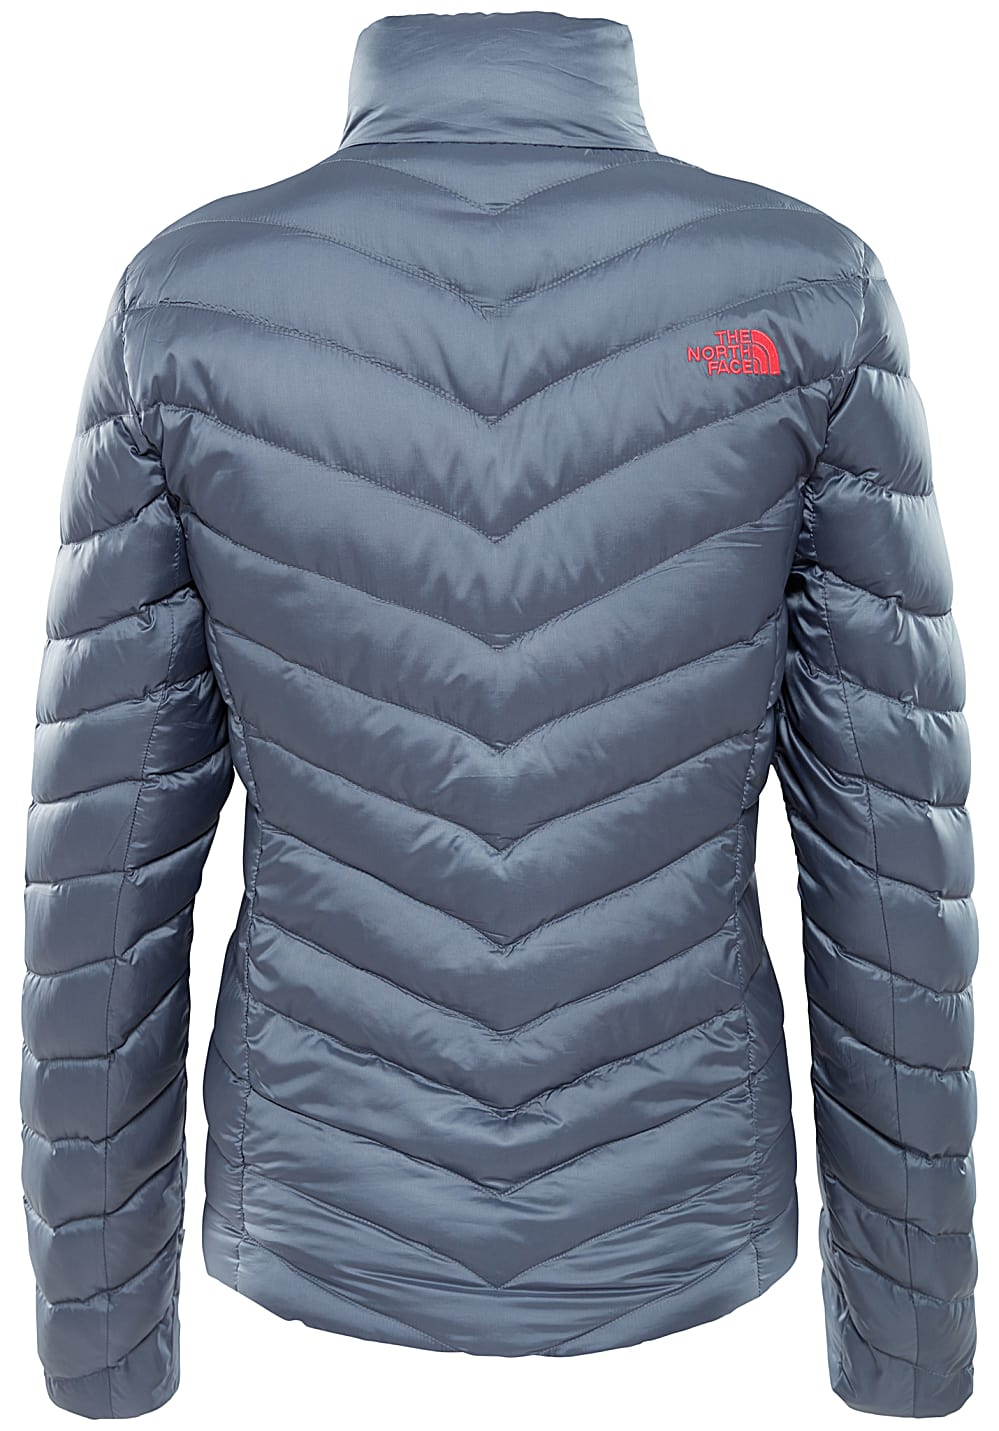 The North Face Trevail Outdoor Jacket For Women Grey Planet Sports